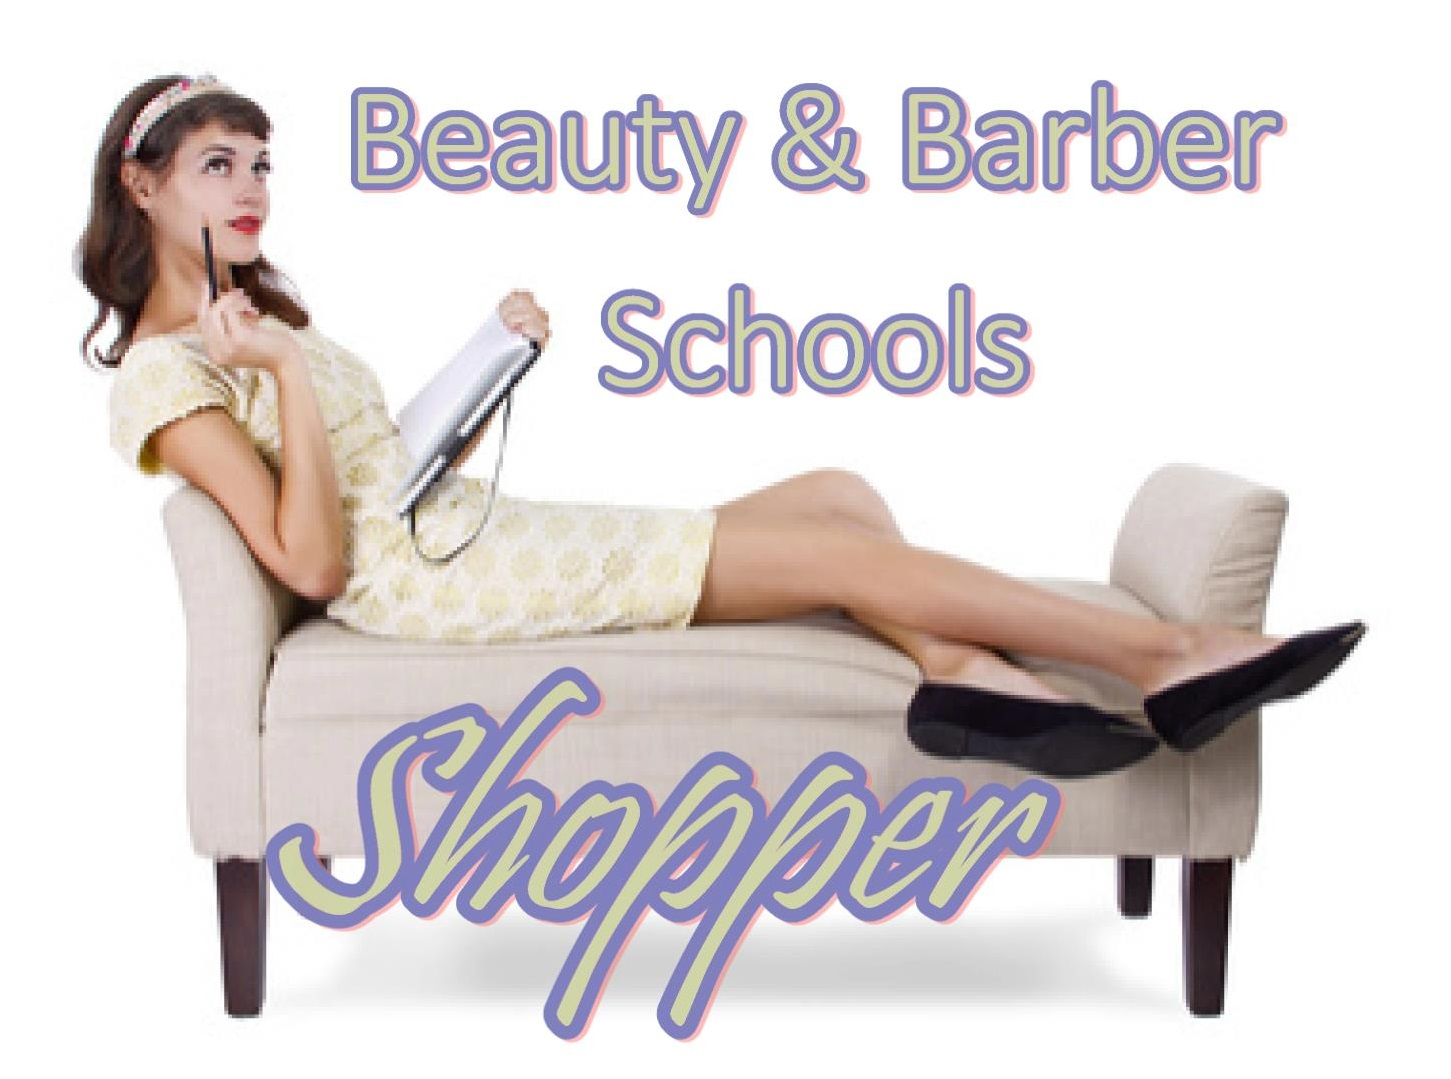 find barber and beauty schools in VIRGINIA